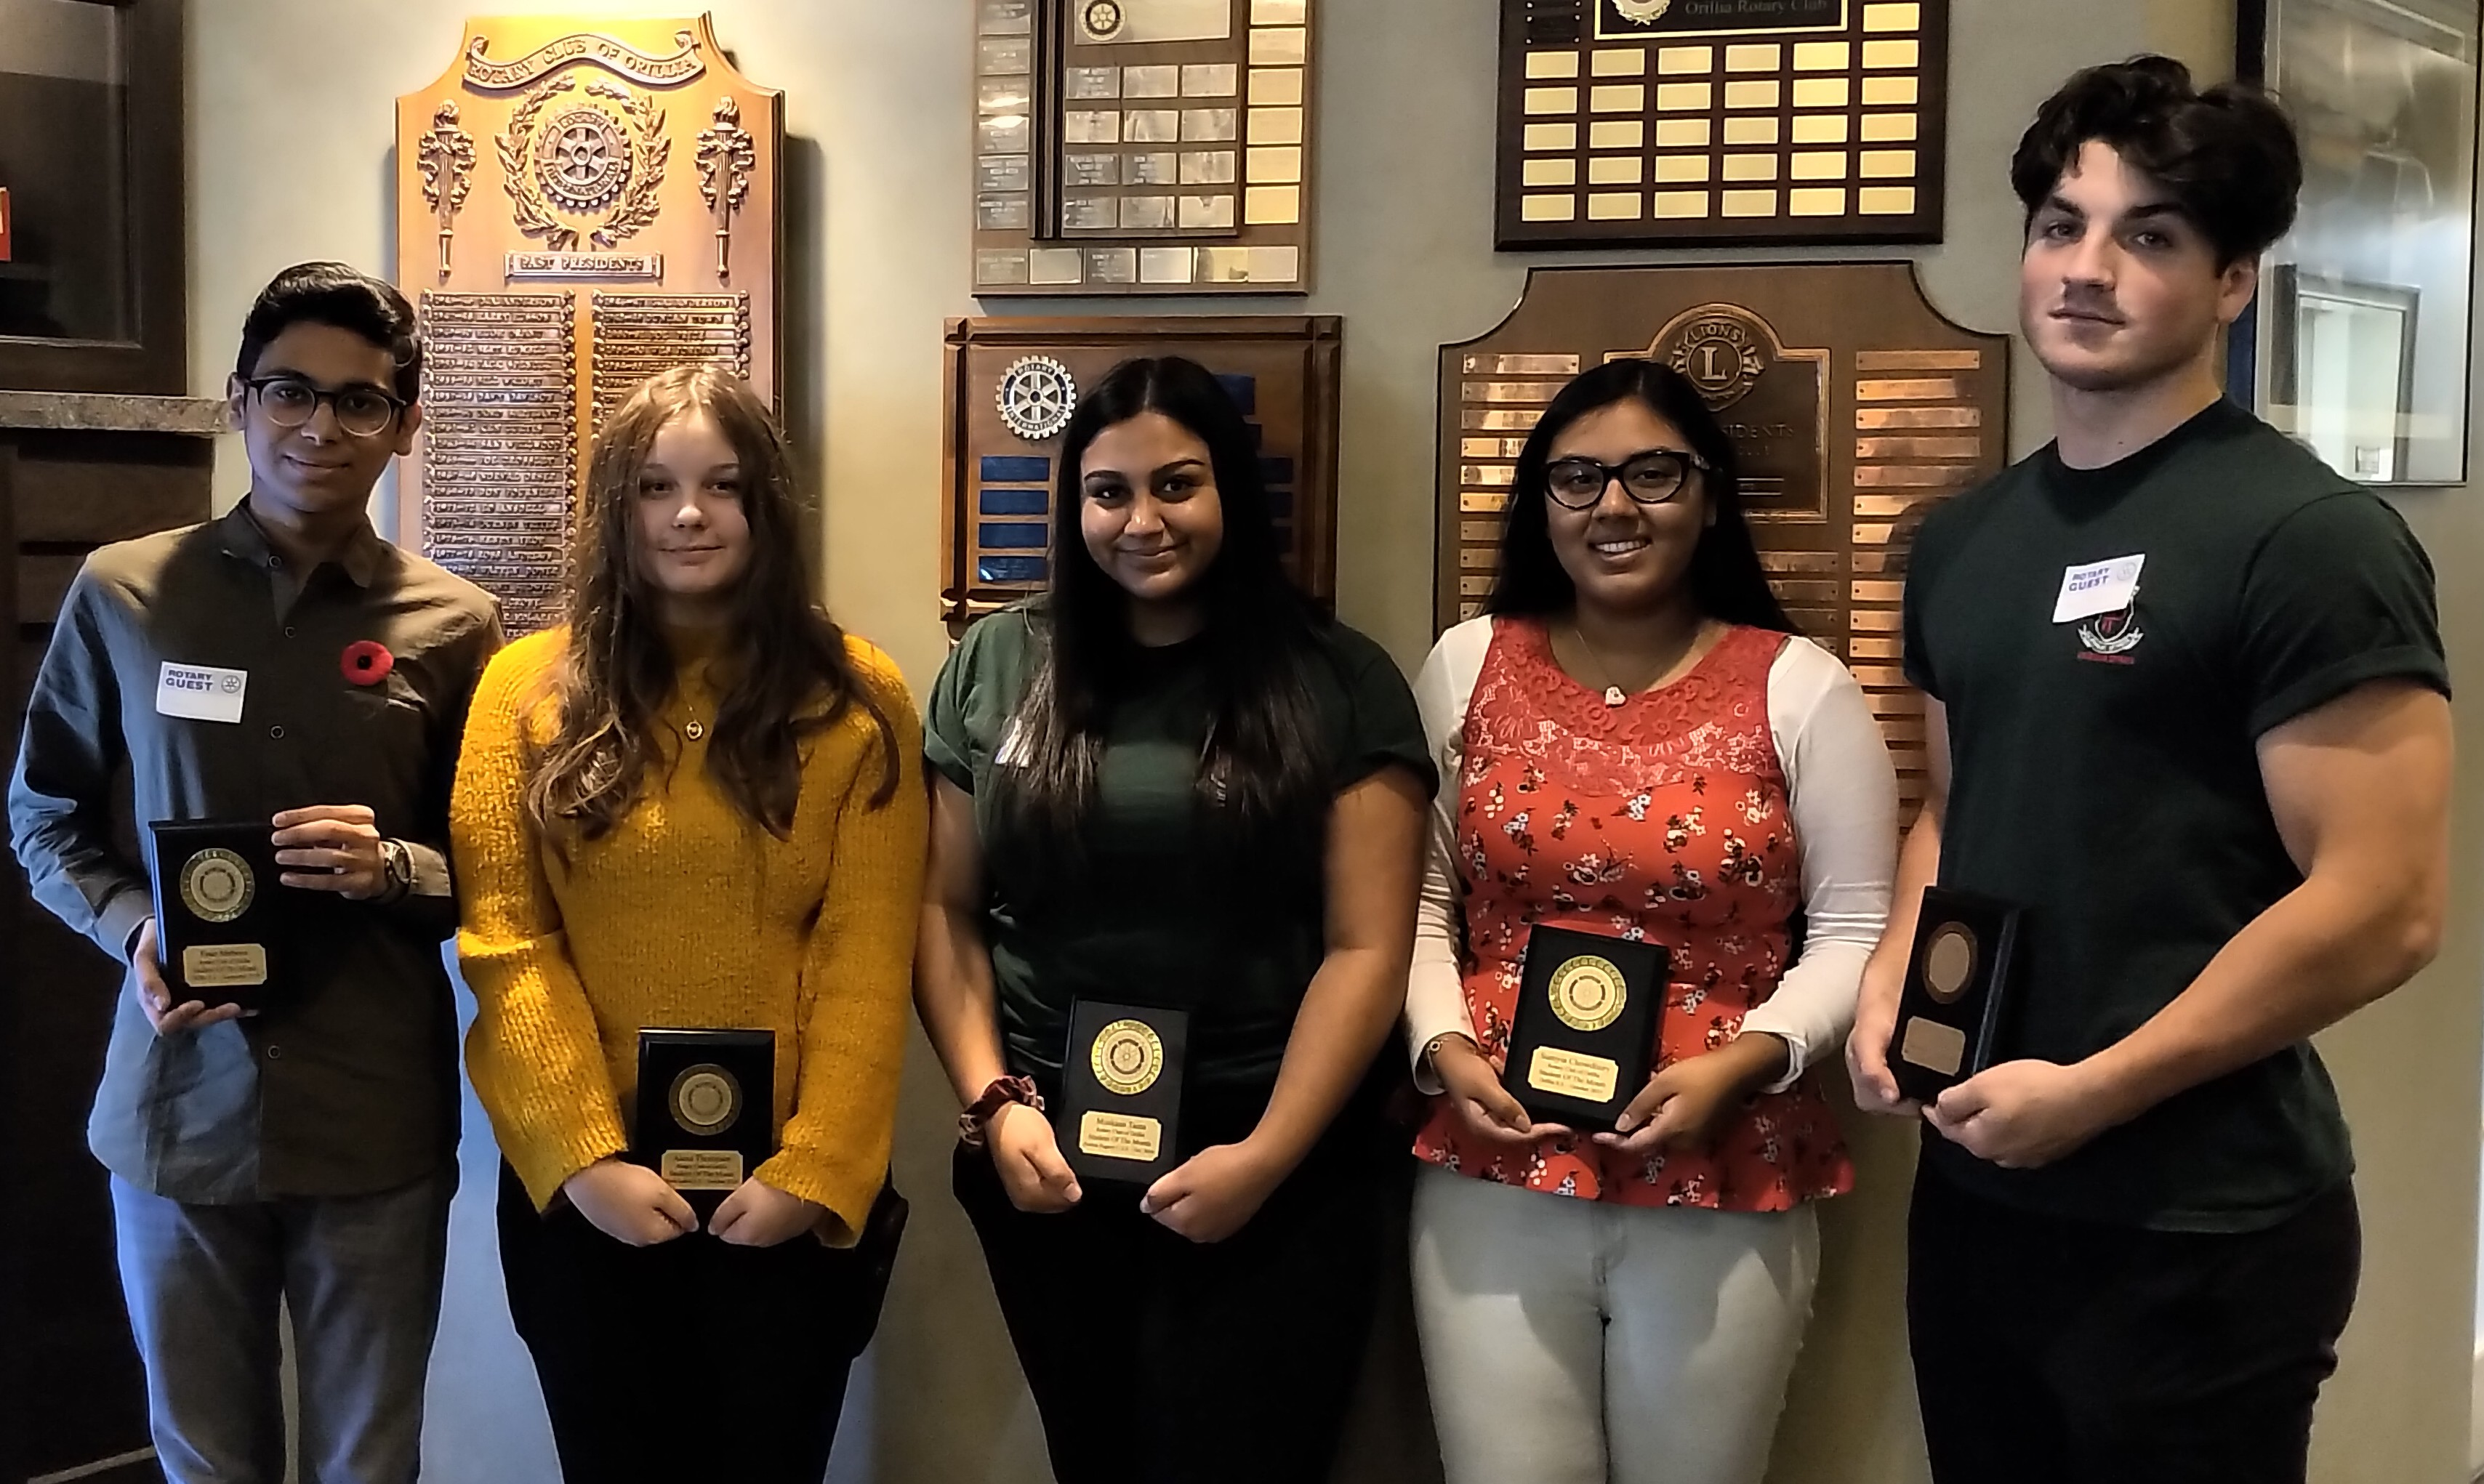 Rotary Club honours Orillia's Students of the Month - OrilliaMatters